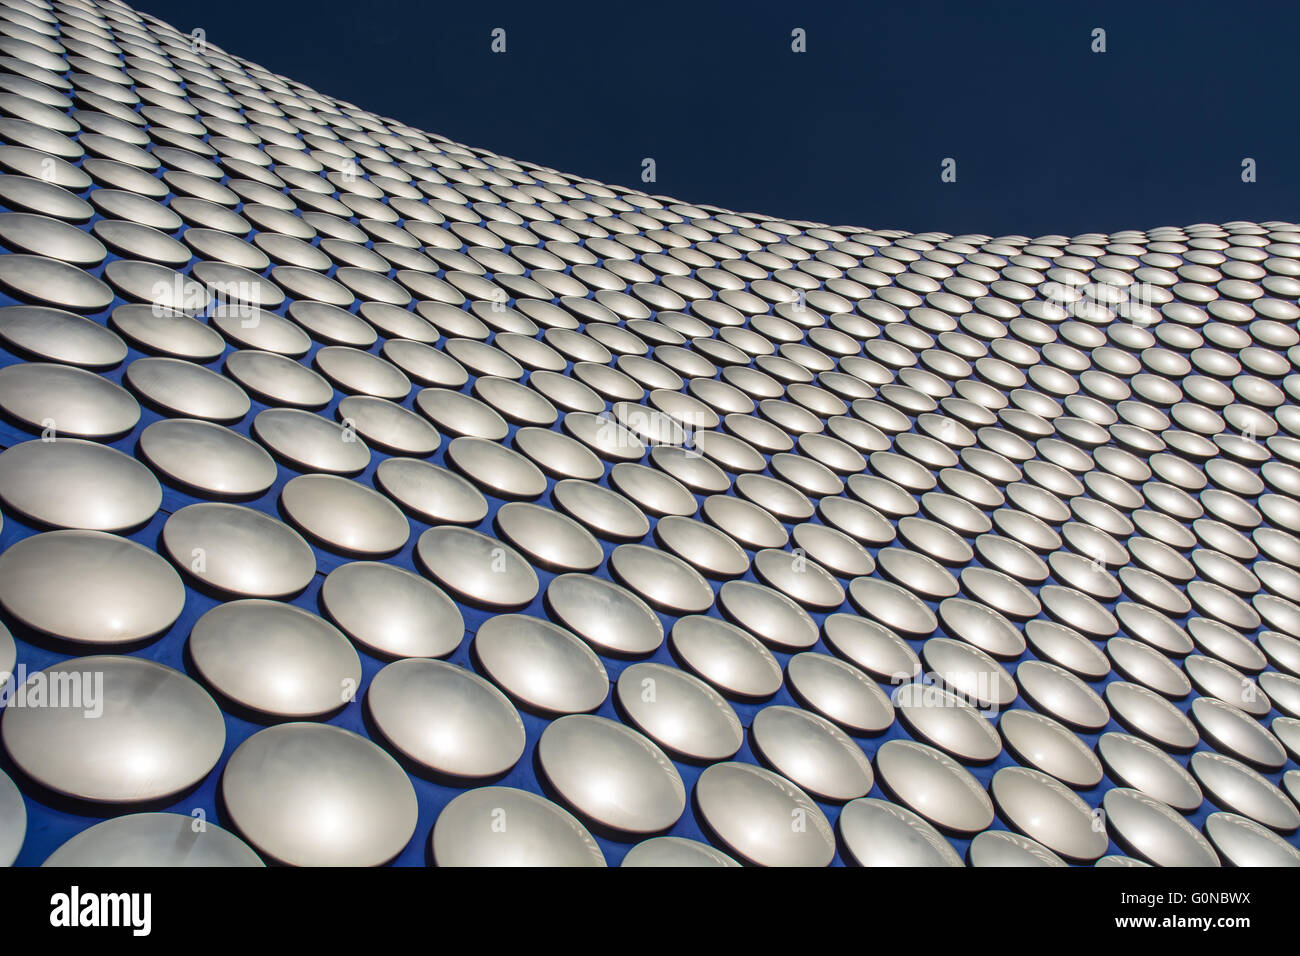 Detail of Selfridges Department Store in Birmingham, UK, designed by Future Systems. - Stock Image